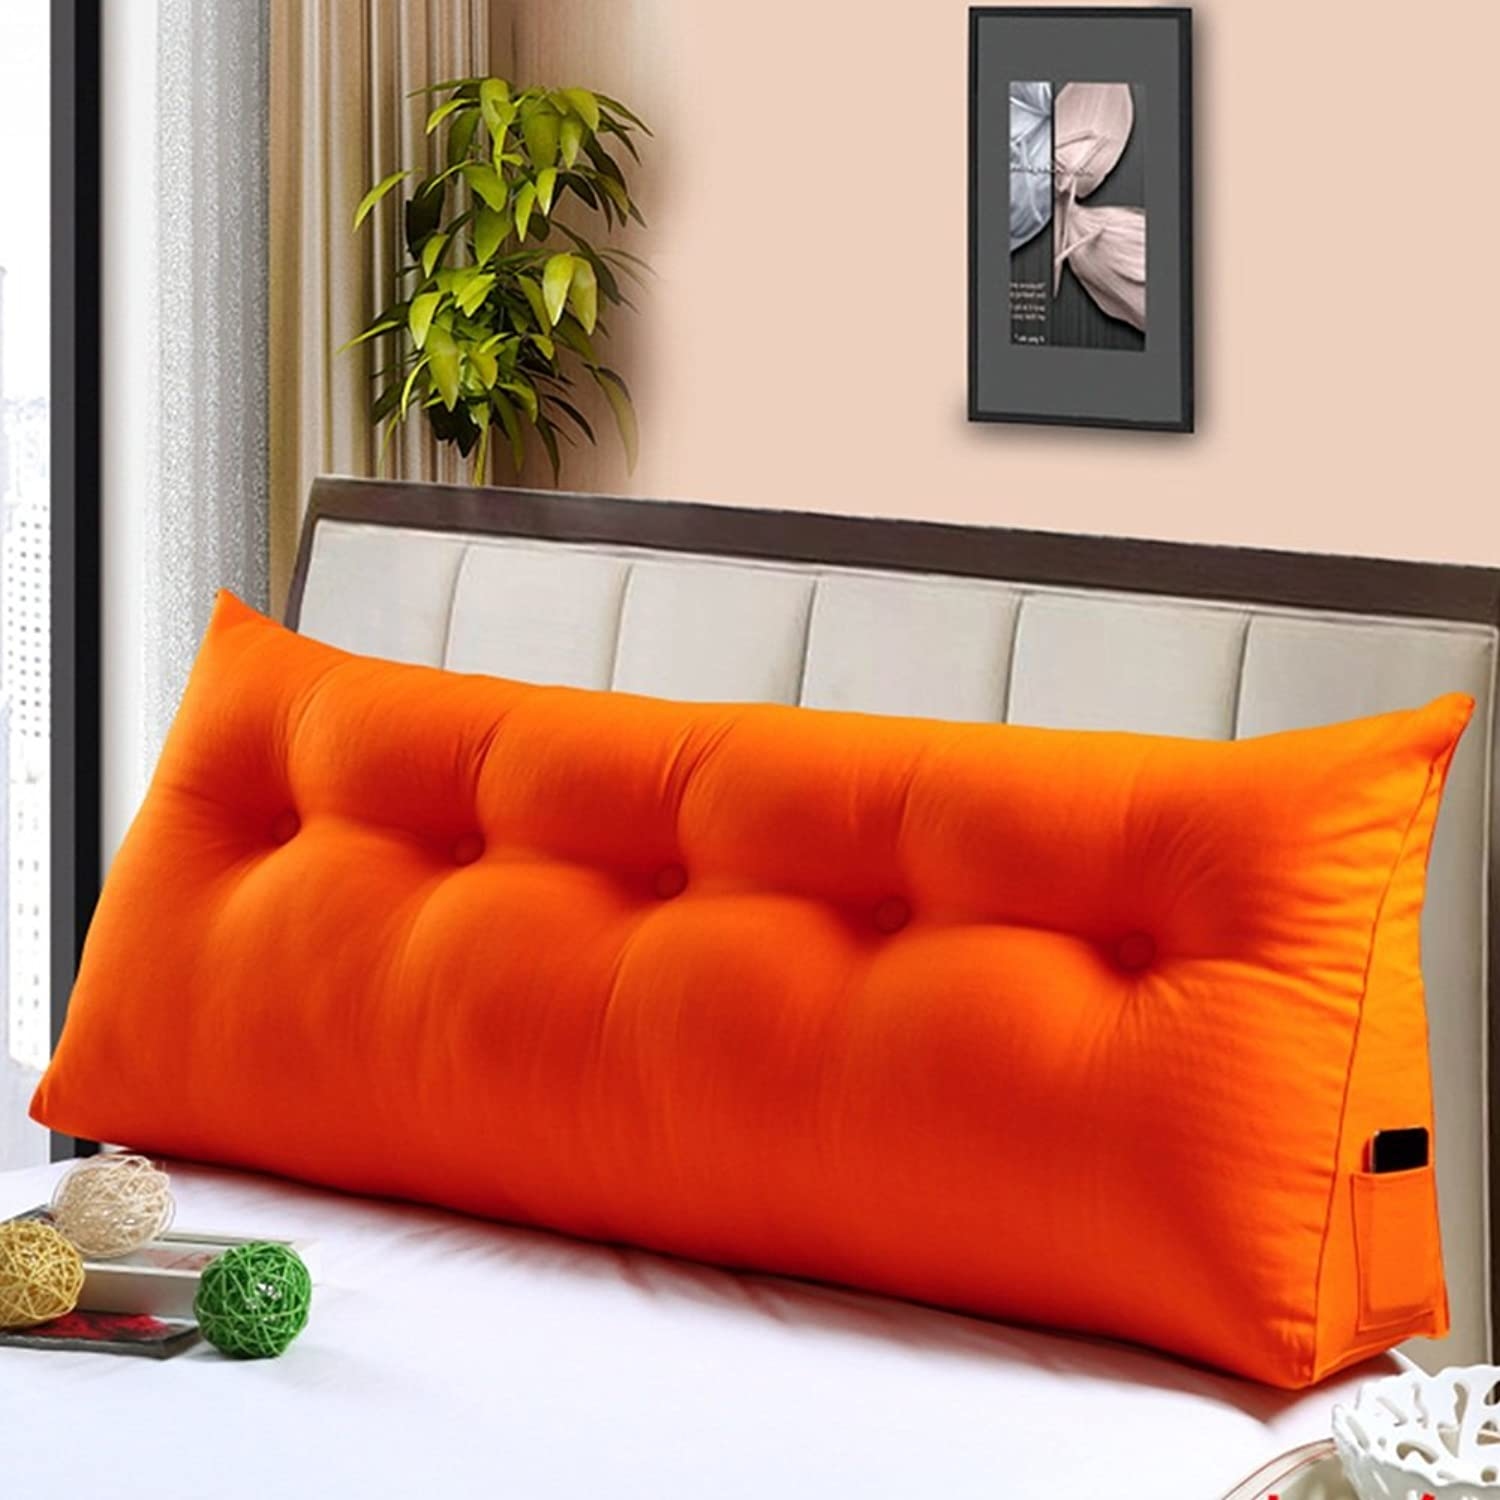 NYDZDM Wedges Headboard Bedside Cushion Pads Cover Bed Wedges Backrest Waist Pad Canvas Triangular Double Bed Soft Case Washable, 6 colors, 5 Sizes (color   4, Size   100 × 50 × 20cm)